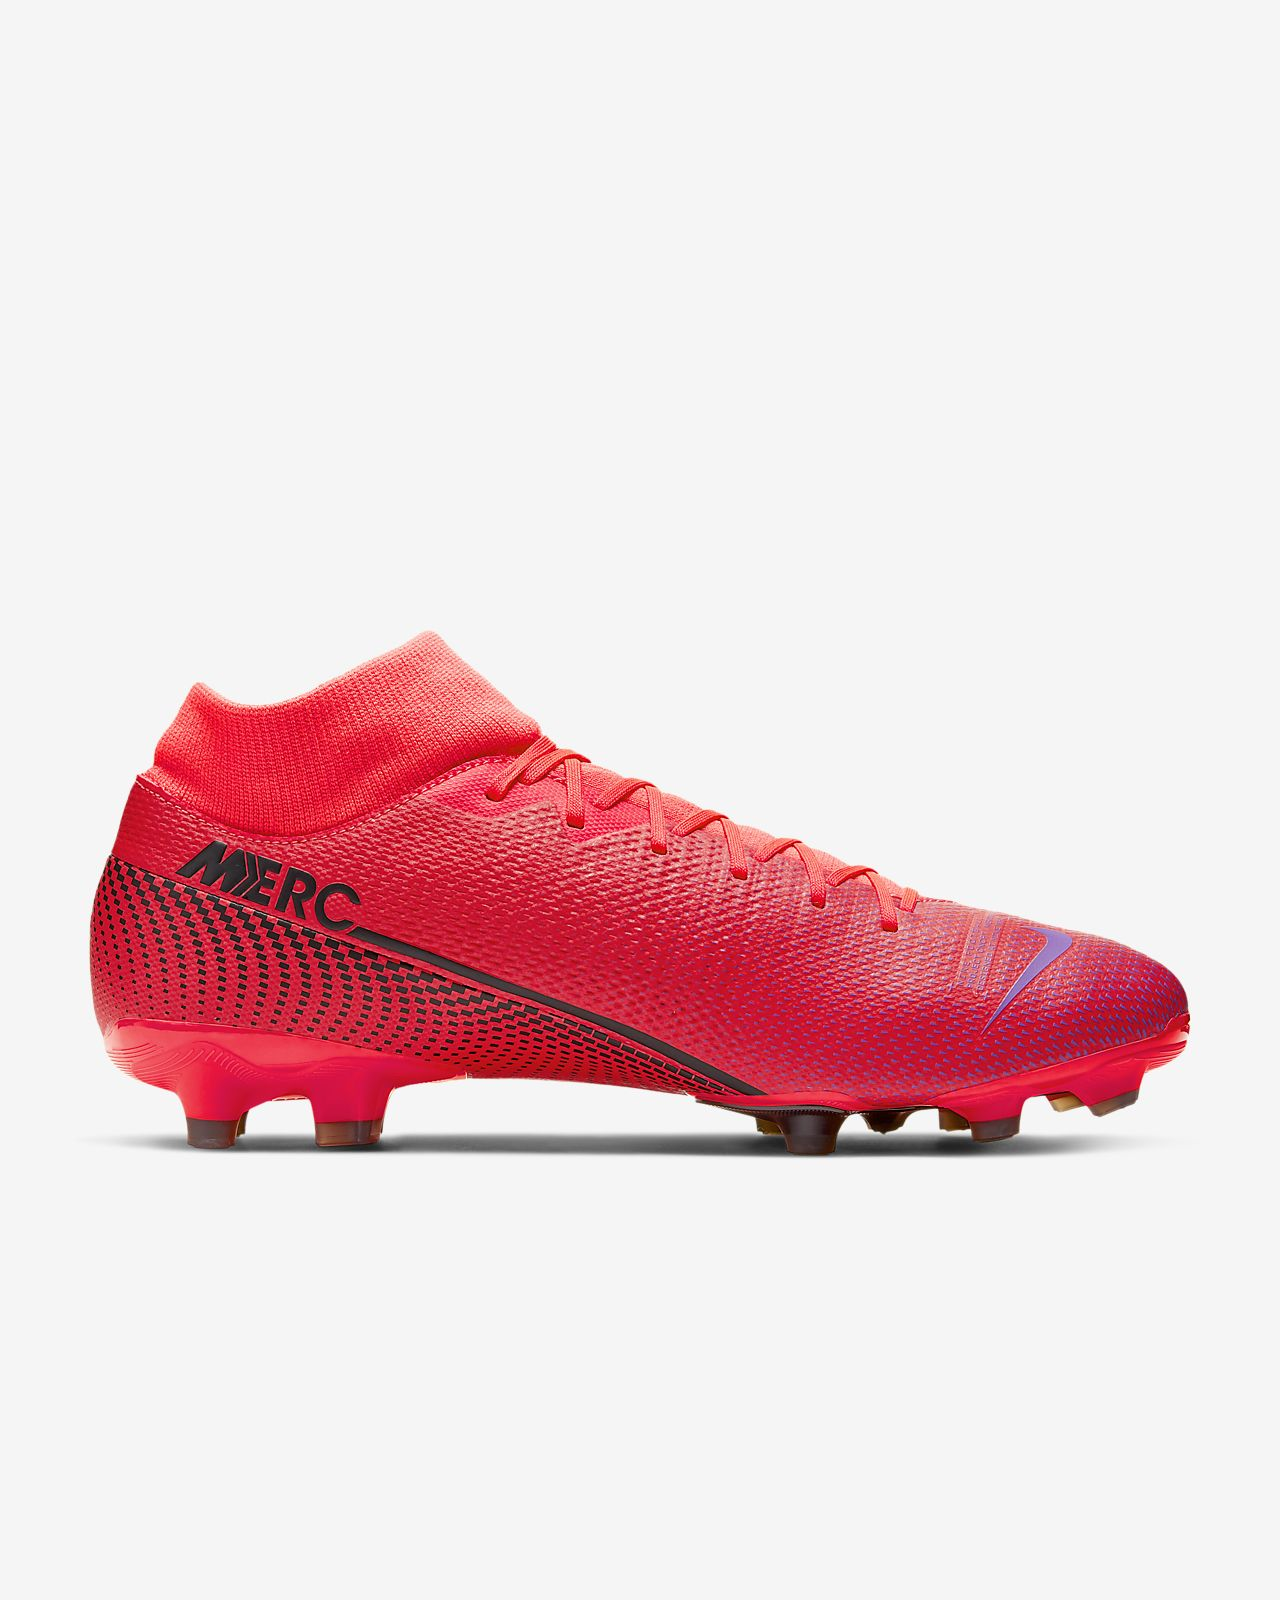 Nike Mercurial Superfly 7 Academy MG Multi Ground Soccer Cleat